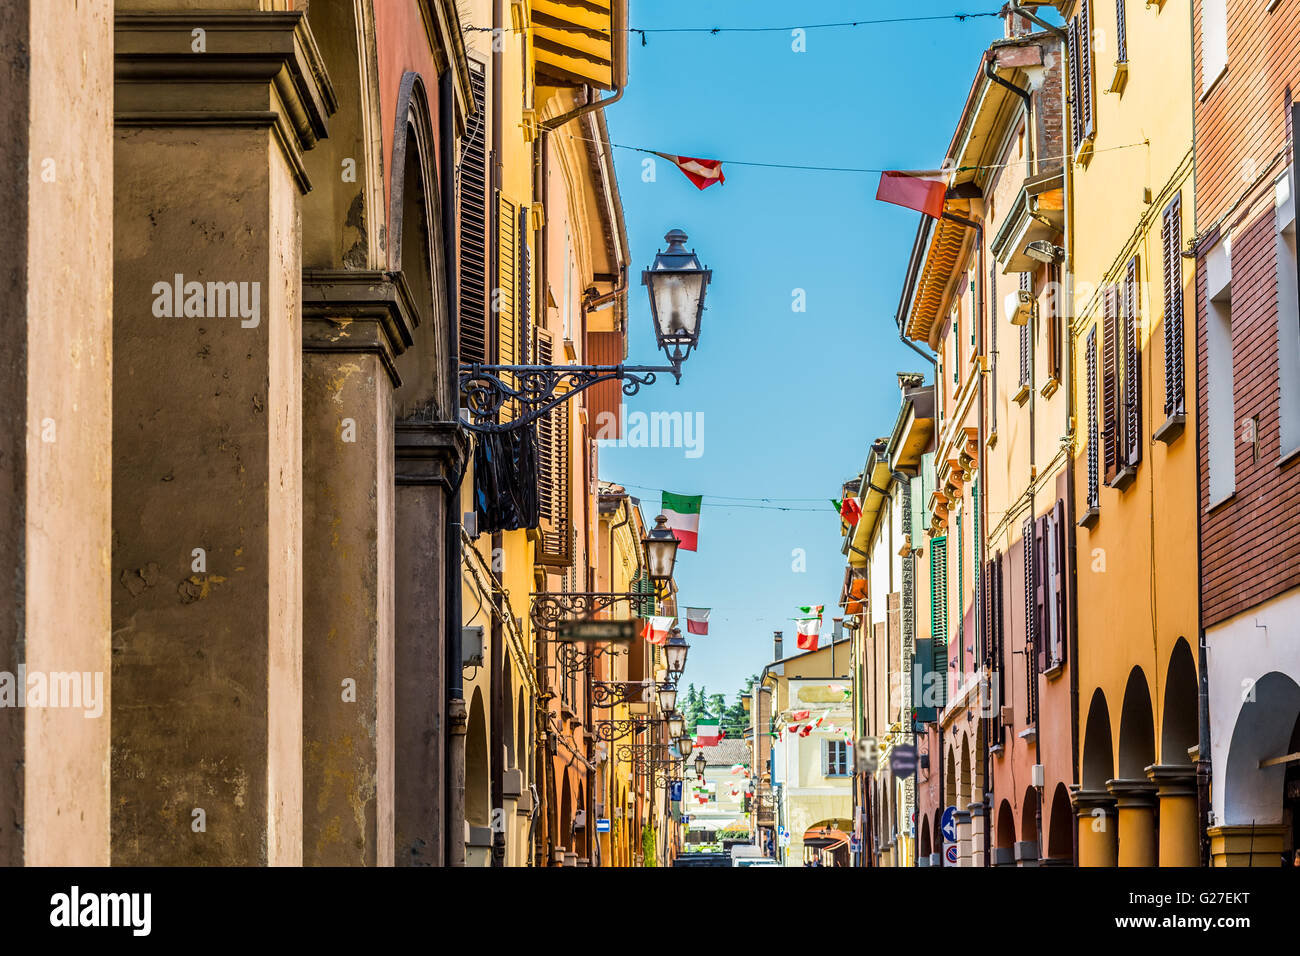 old city street with colorful houses and waving Italian flags - Stock Image